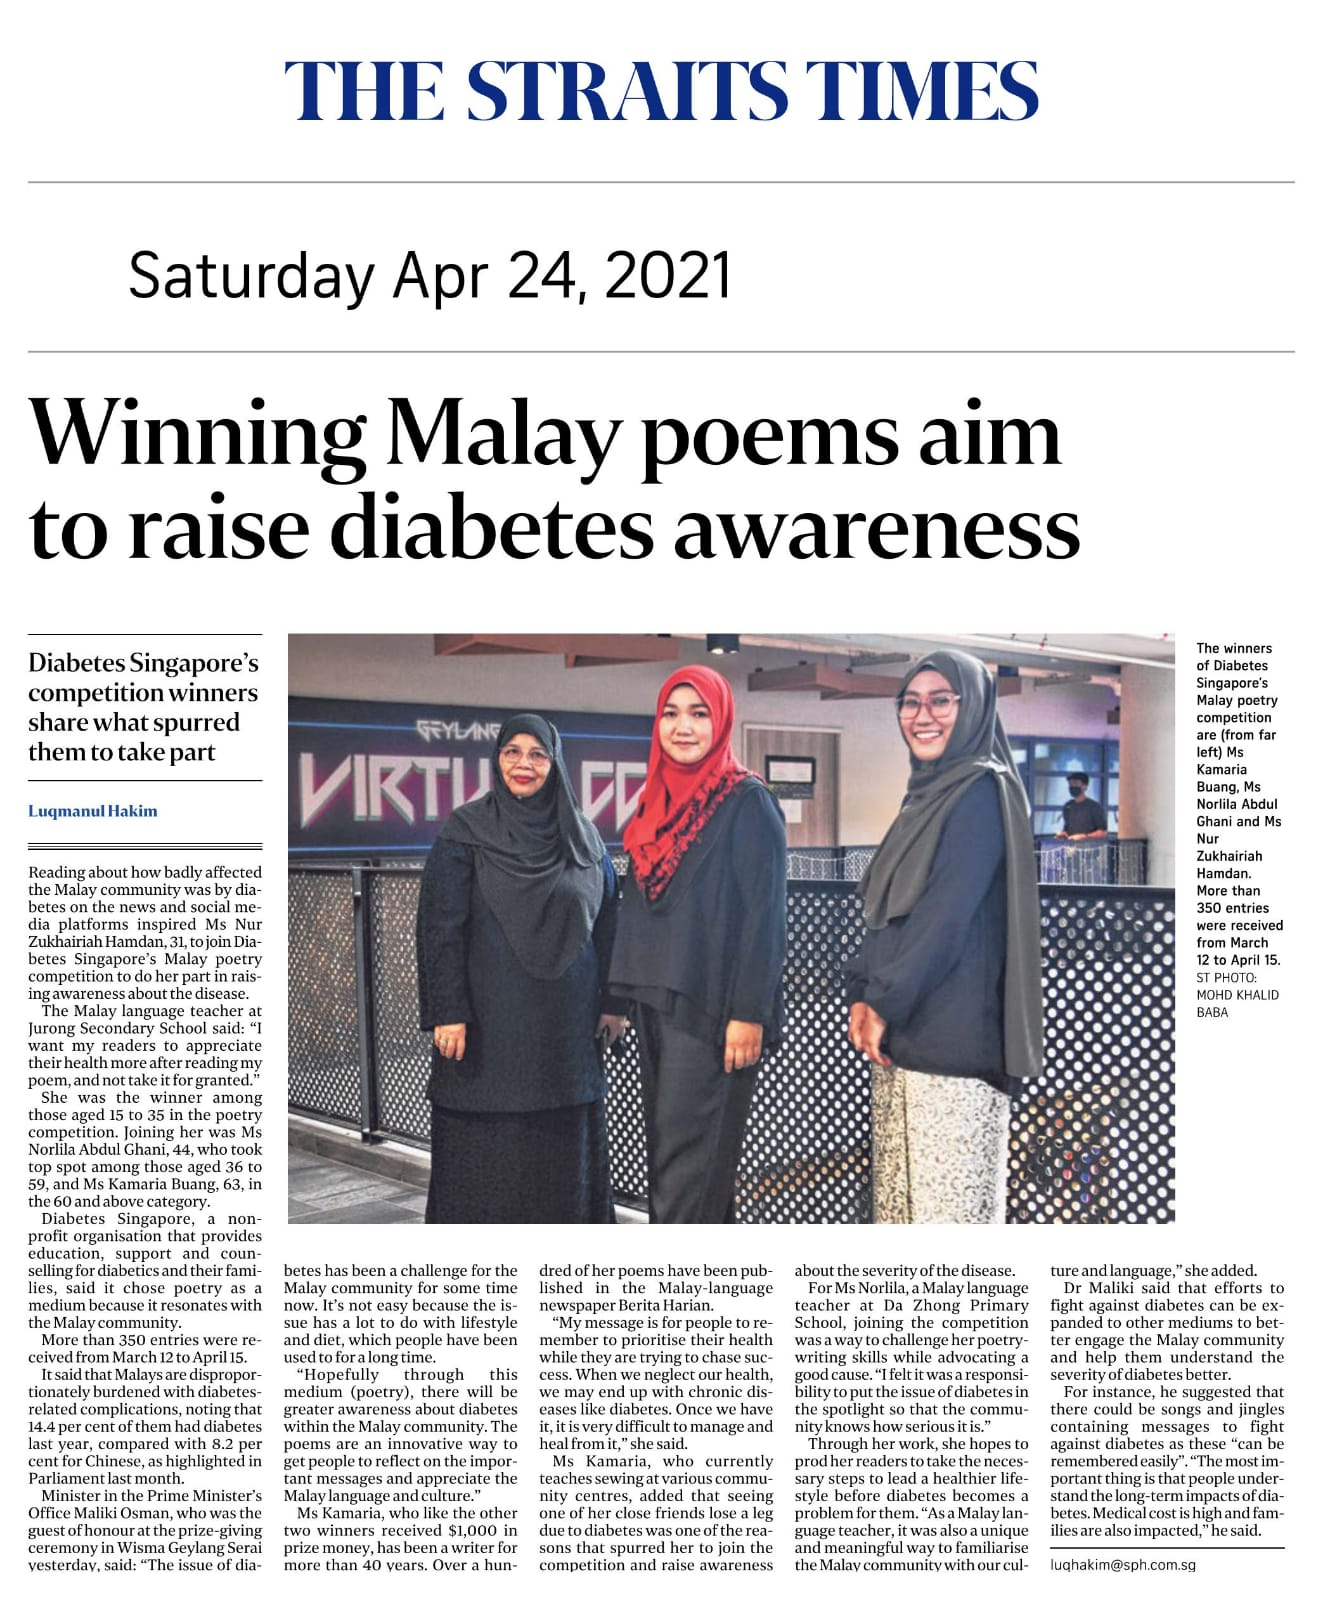 Winning Malay poems aim to raise diabetes awareness - Published in The Straits Times Apr 24, 2021